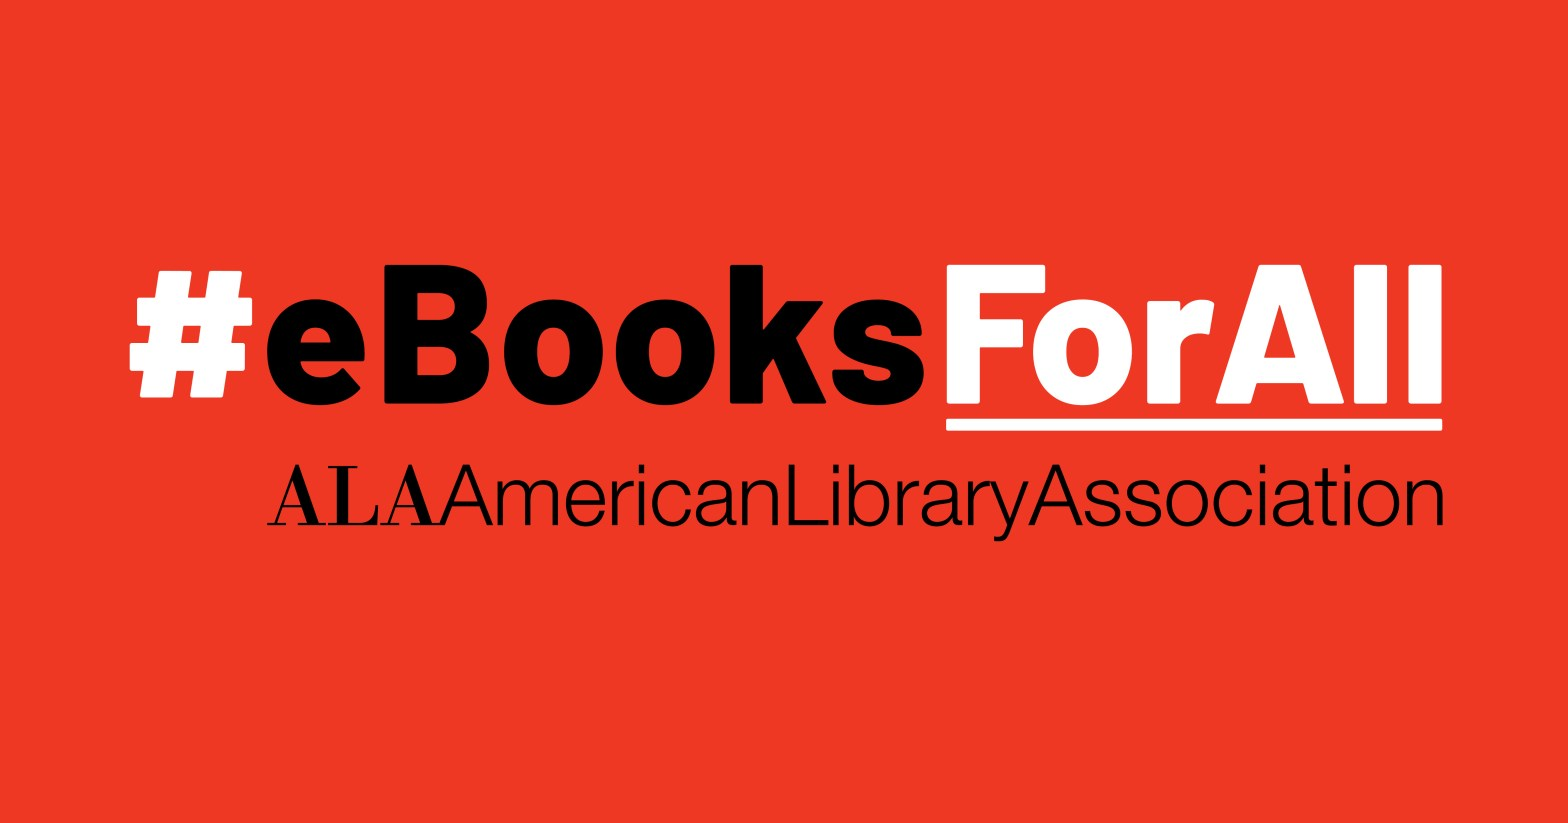 """Banner image with that has the hashtag """"eBooksForAll"""" in bold. Underneath are the words """"ALA American Library Association,"""" written in black. The writing all appears over a solid red background."""